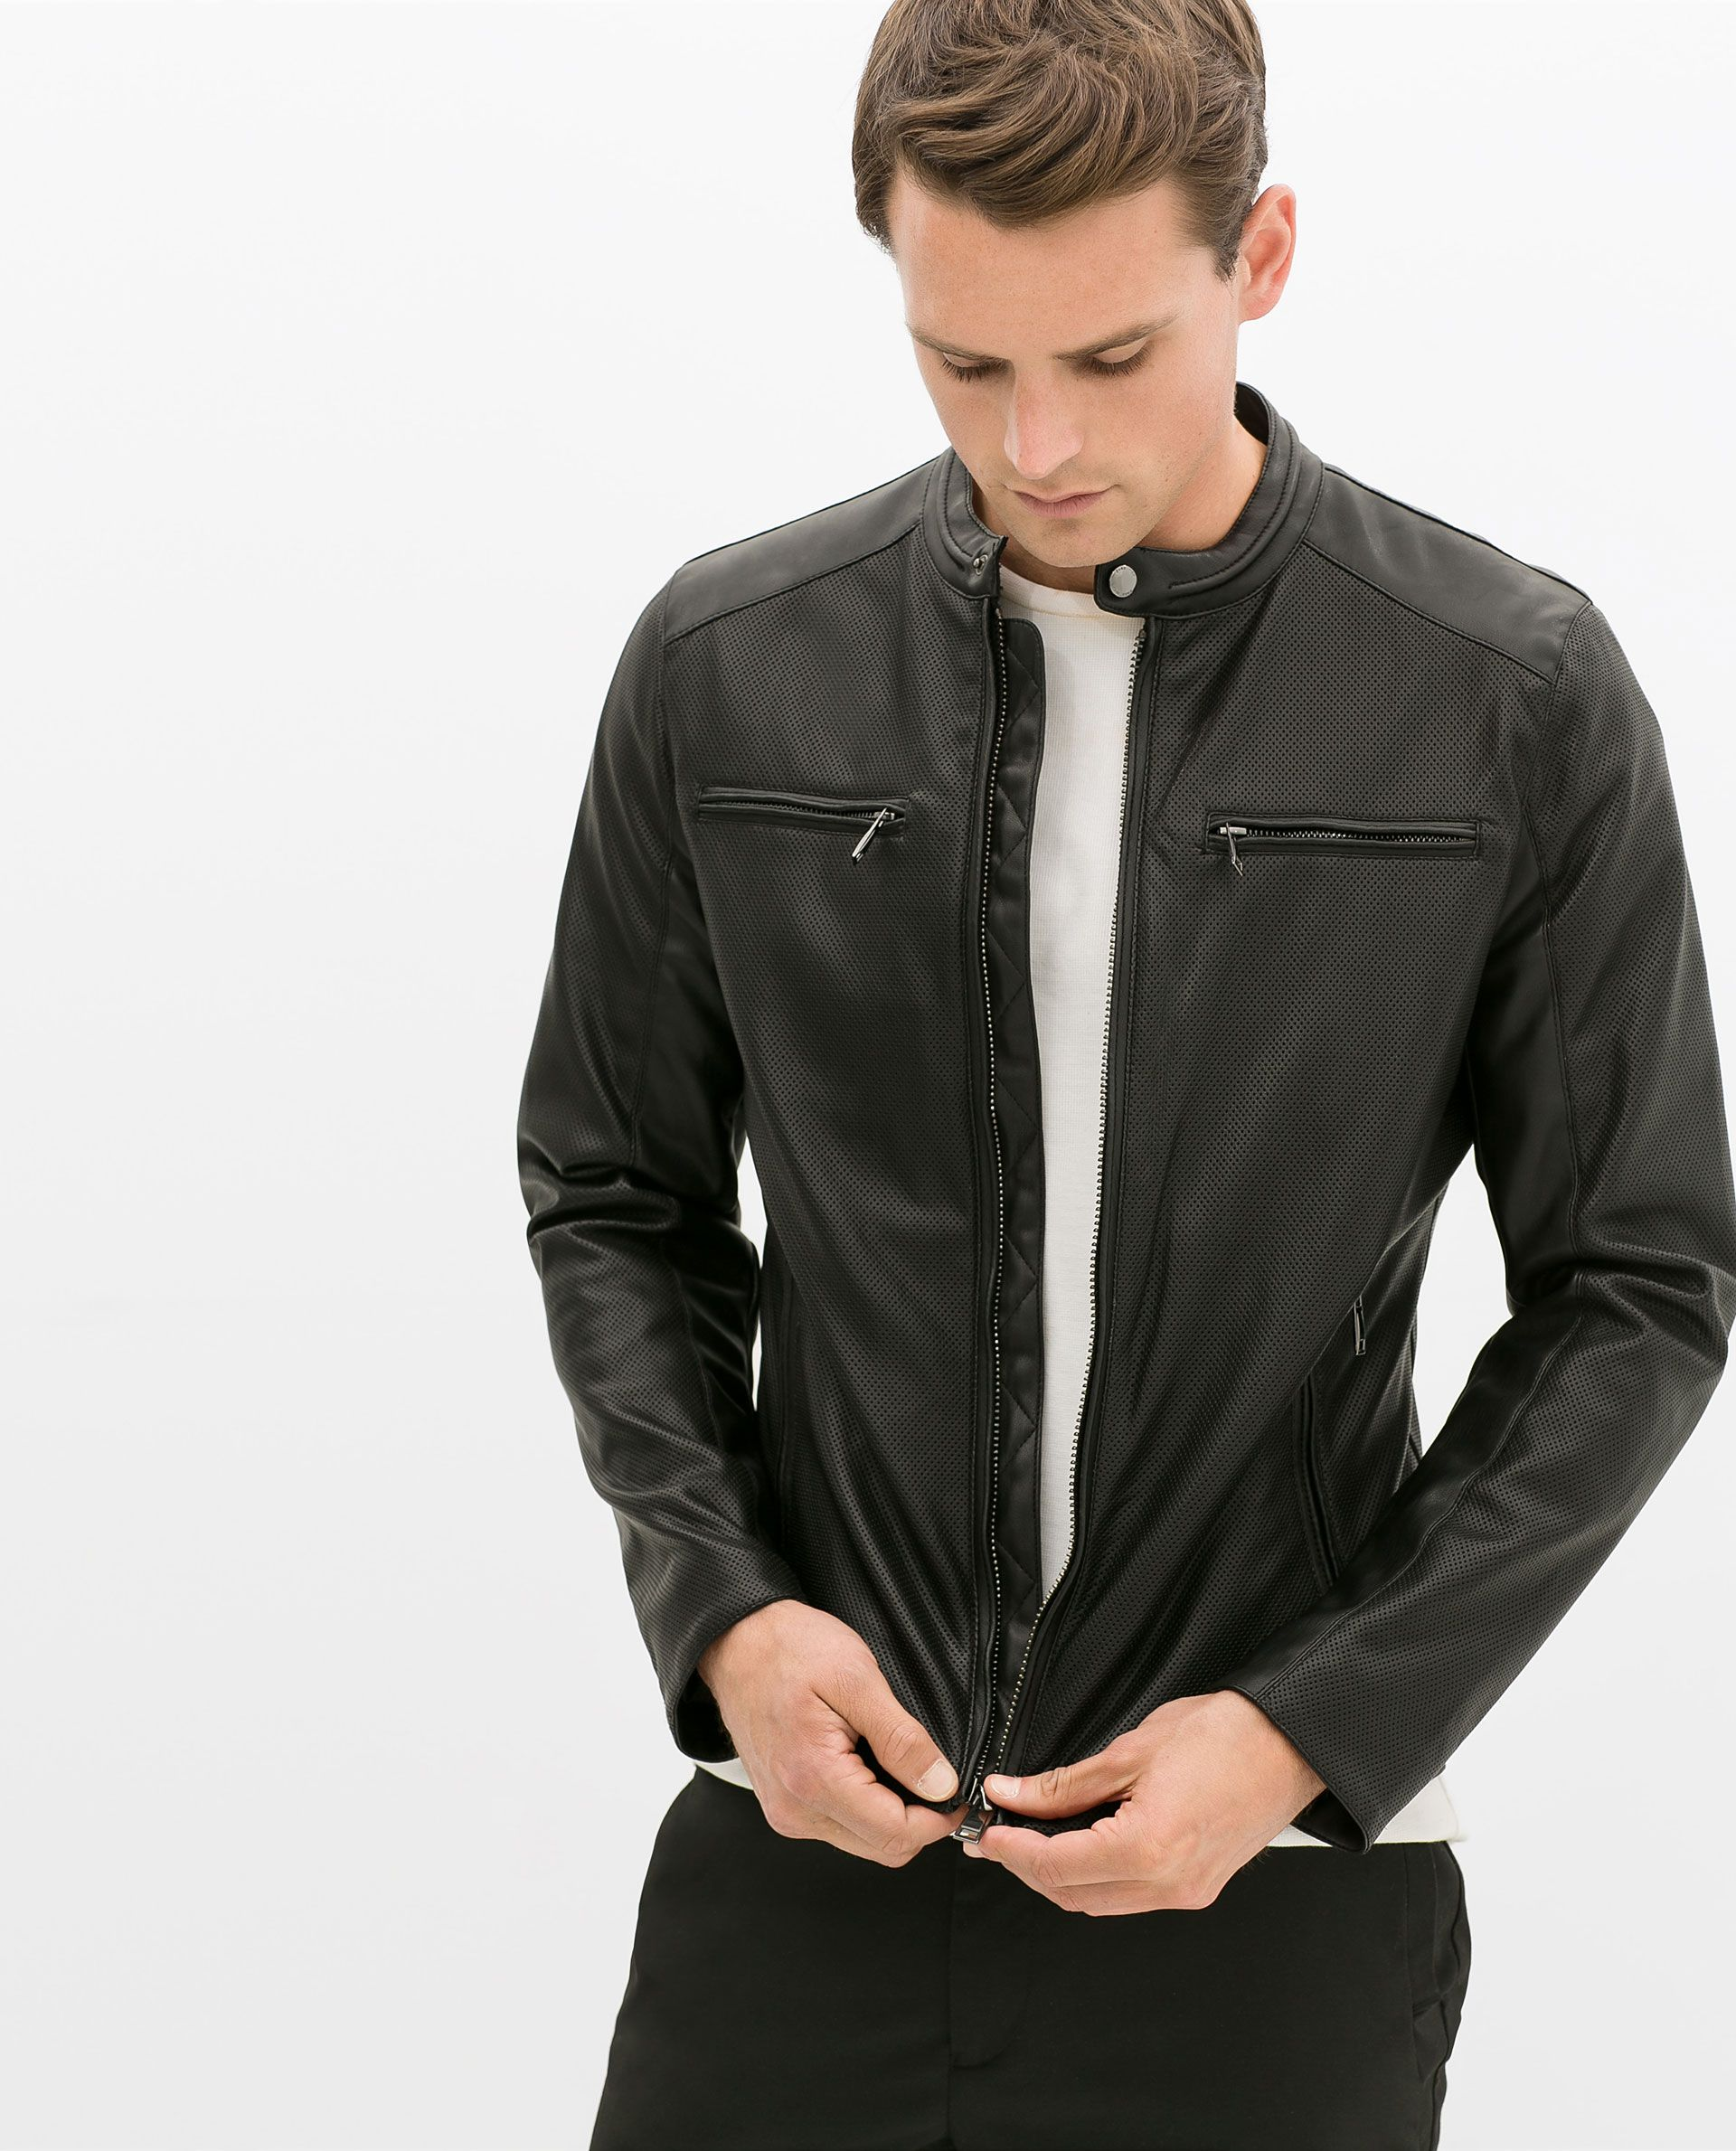 4b0234e1 Image 2 of PERFORATED FAUX LEATHER JACKET from Zara | Stuff to Buy ...